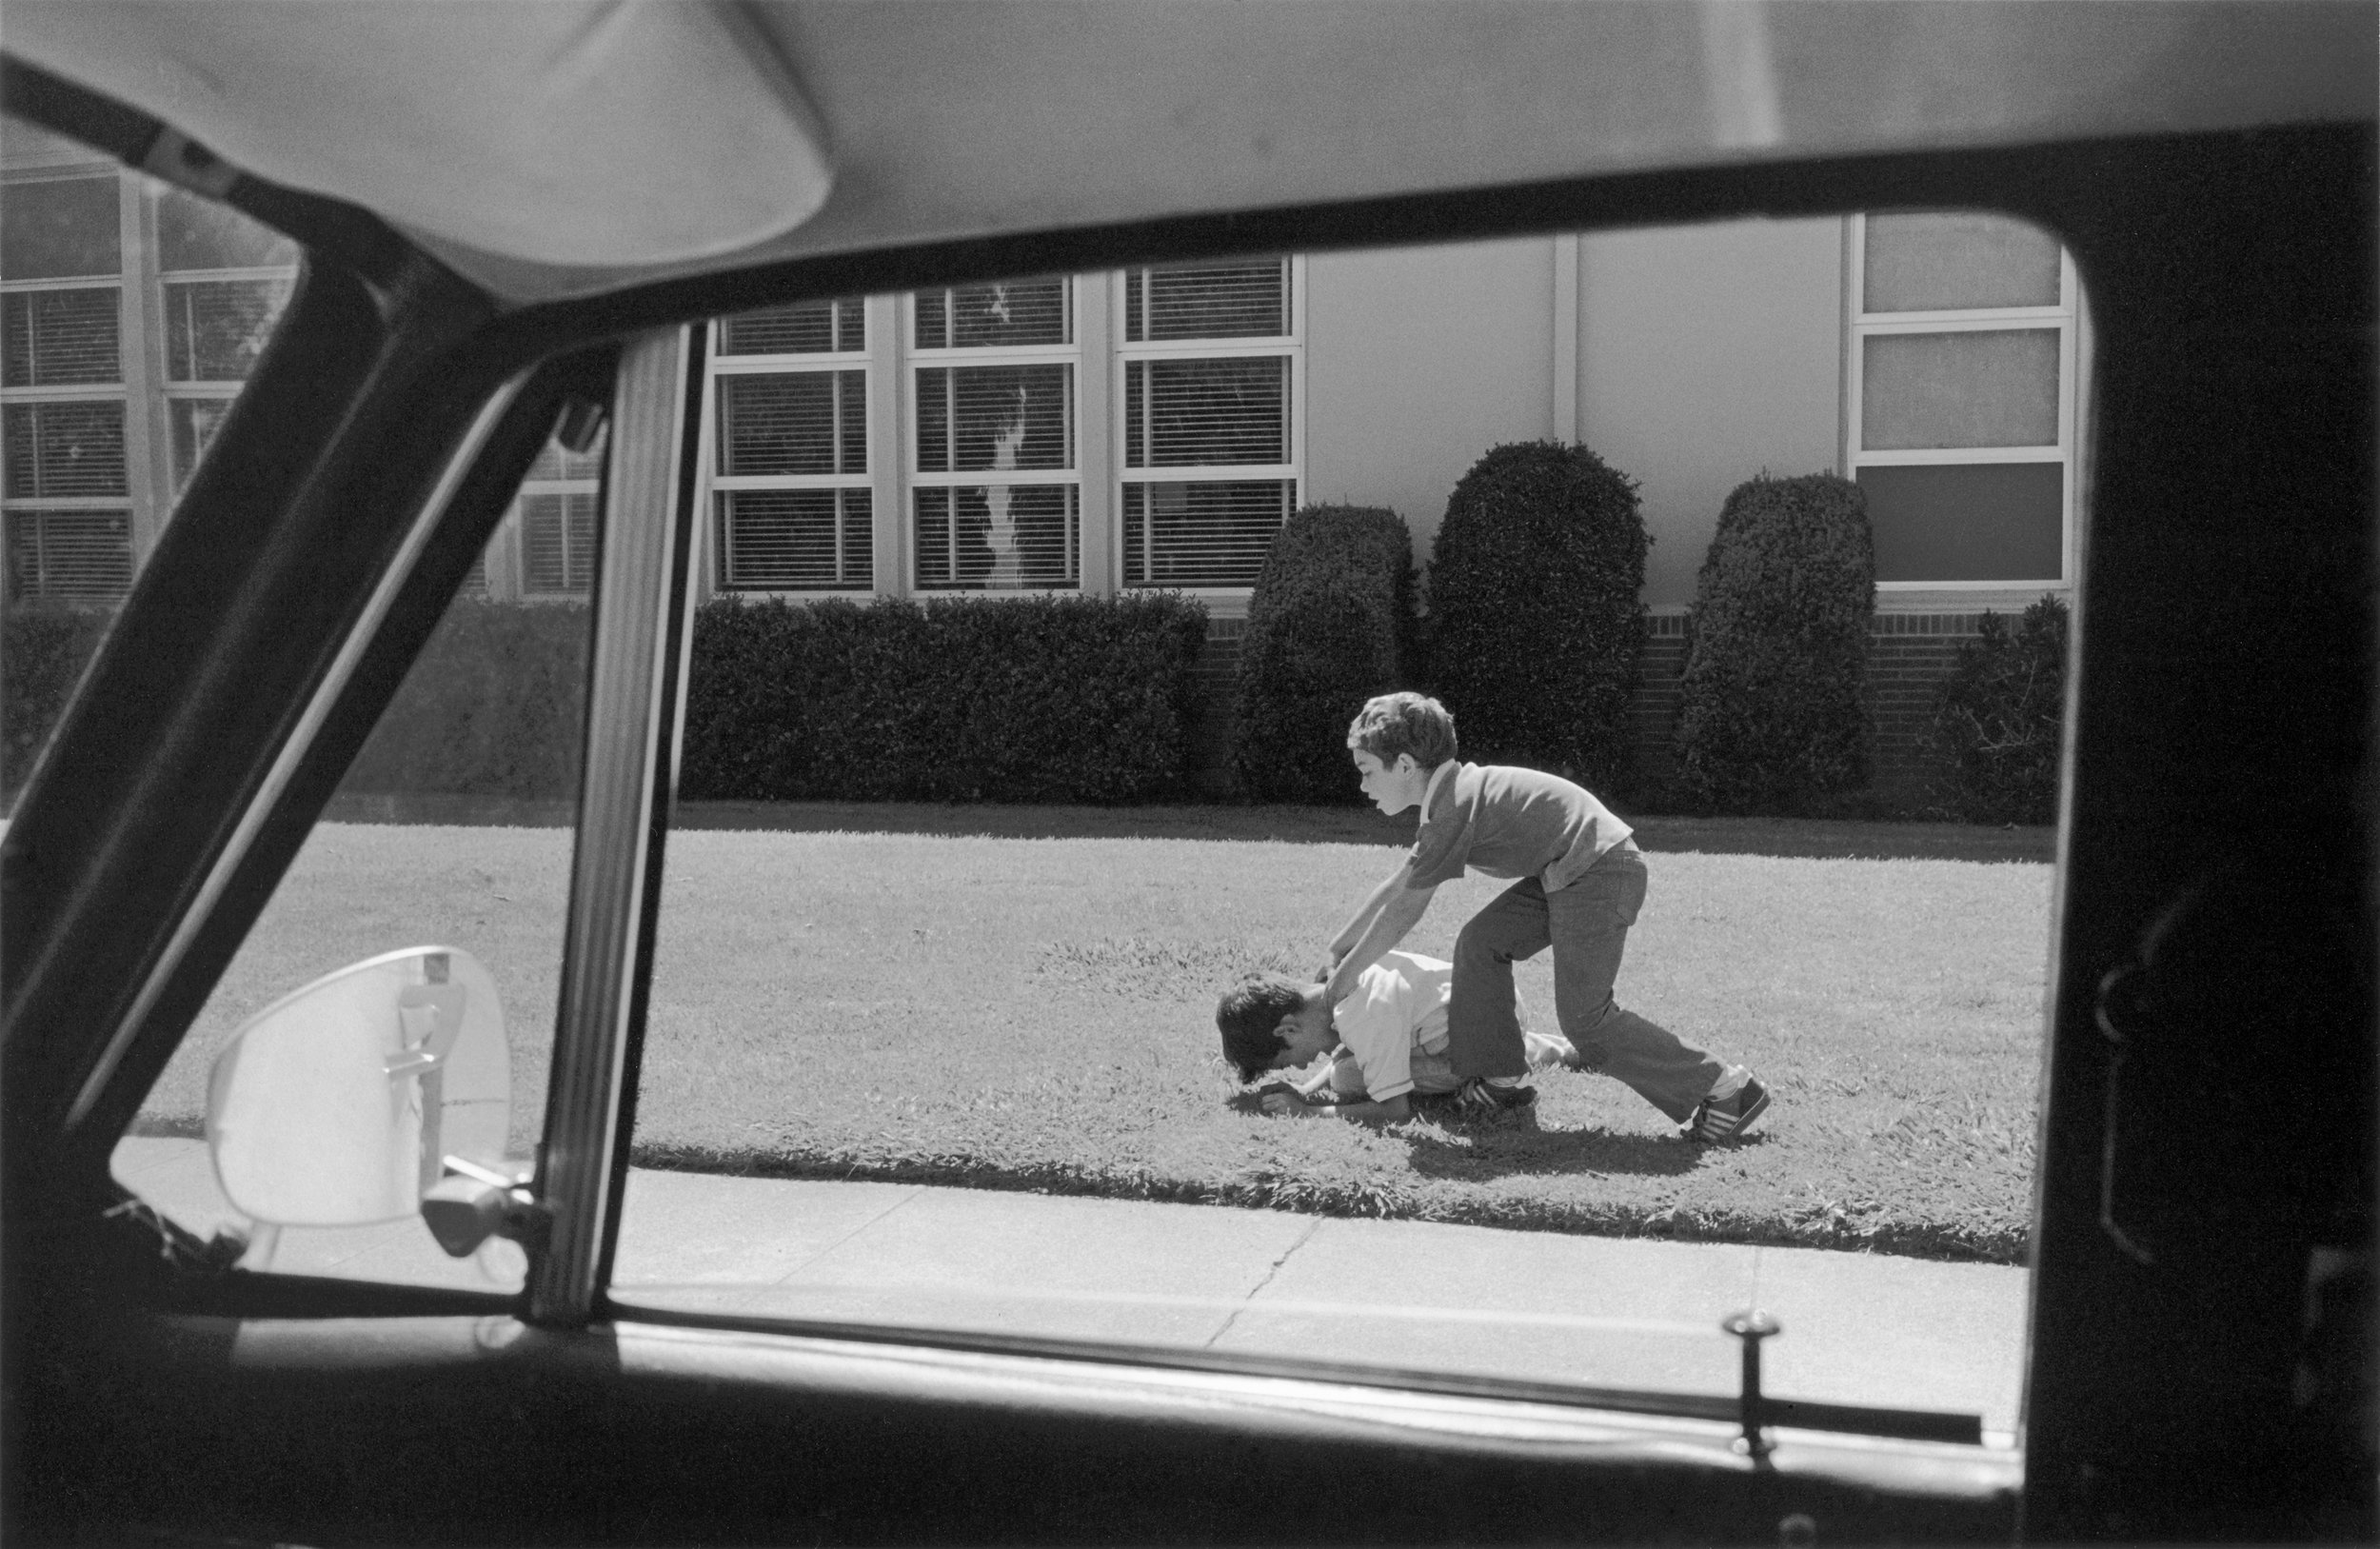 Henry Wessel Incident No.6 De la série Incidents, 2012 © Henry Wessel; courtesy Pace/MacGill Gallery, New York